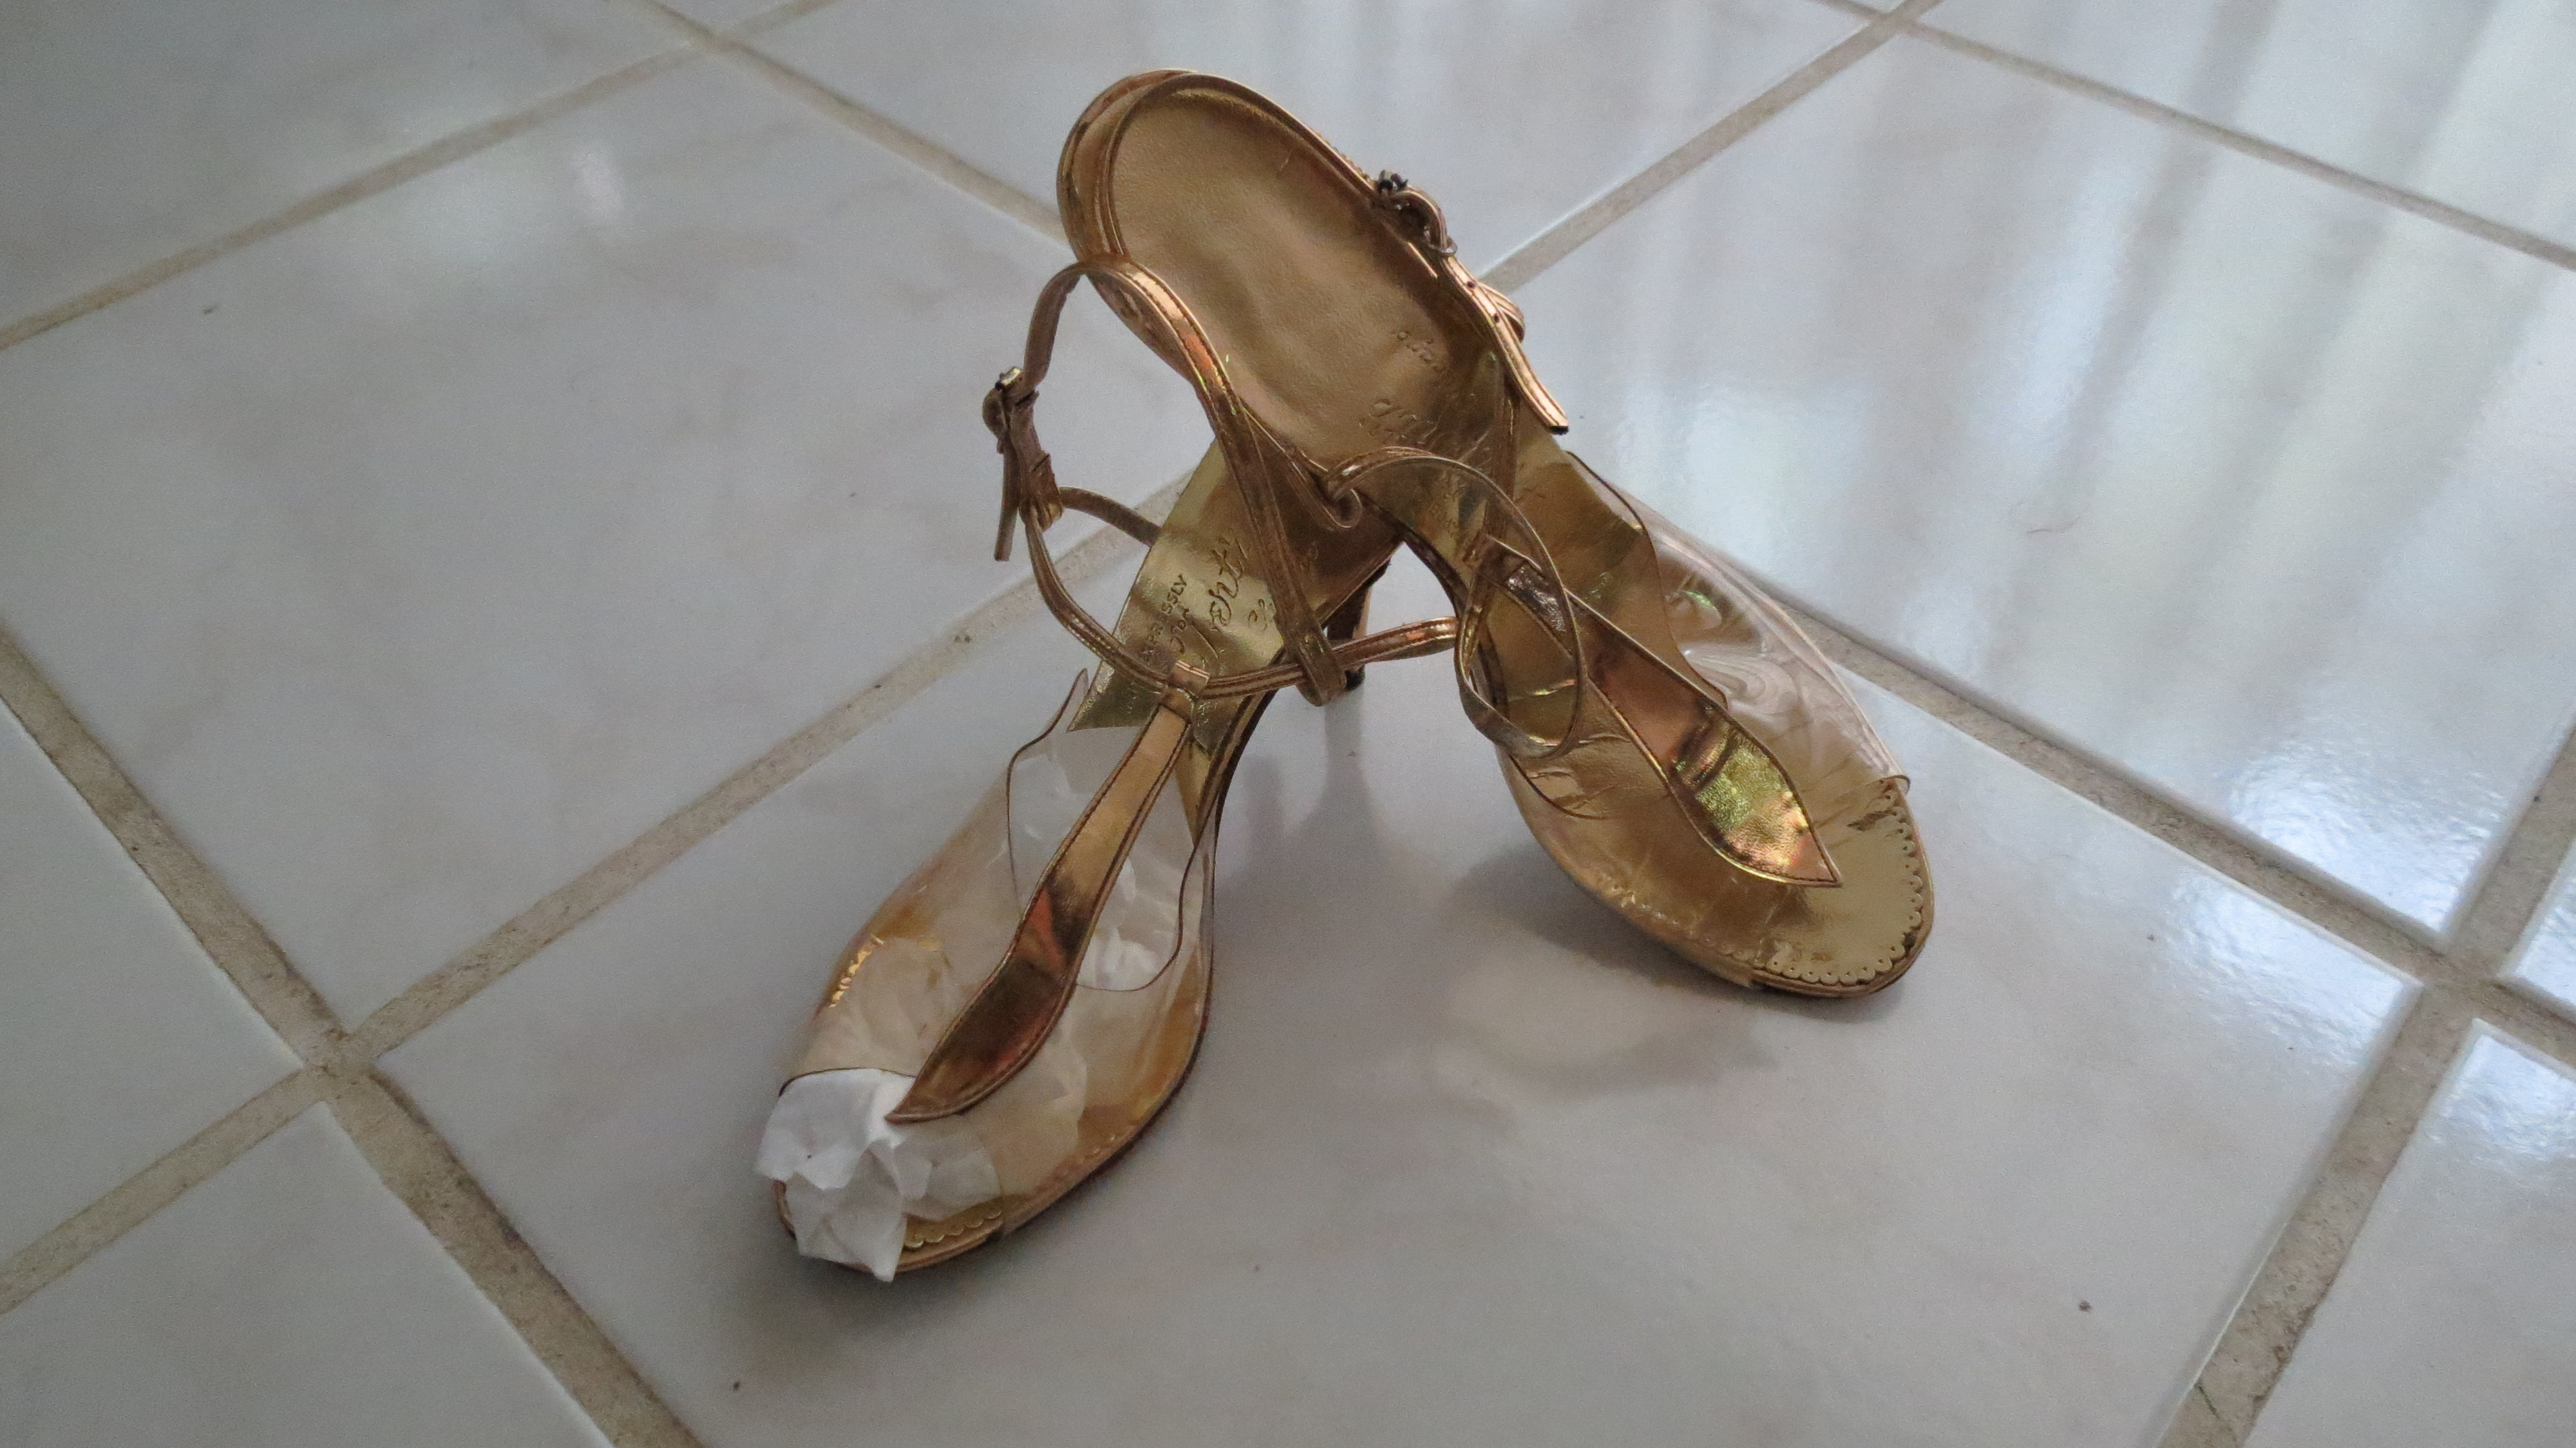 TRUE VINTAGE 1950'S PEEP-TOE GOLD LEATHER & CLEAR VINYL EVENING SANDALS FROM A SPECIALTY STORE